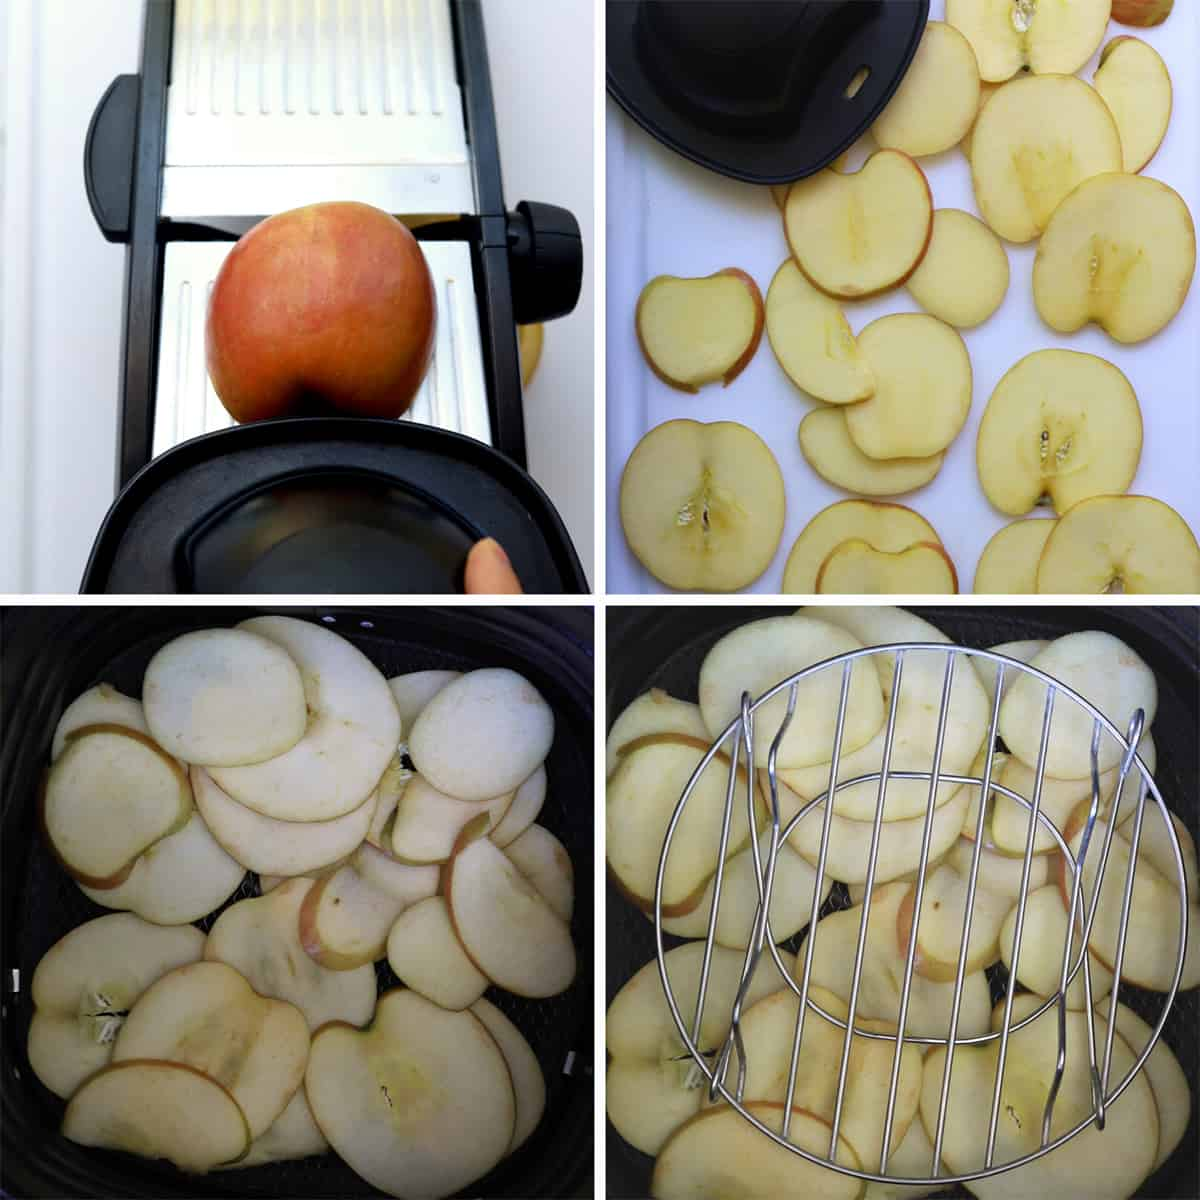 Grid with pictures, how to make apple chips. First grid with mandoline and apple. Second grid with apple slices on cutting board. Third grid with apples in air fryer basket. Fourth grid with trivet on top of apples.